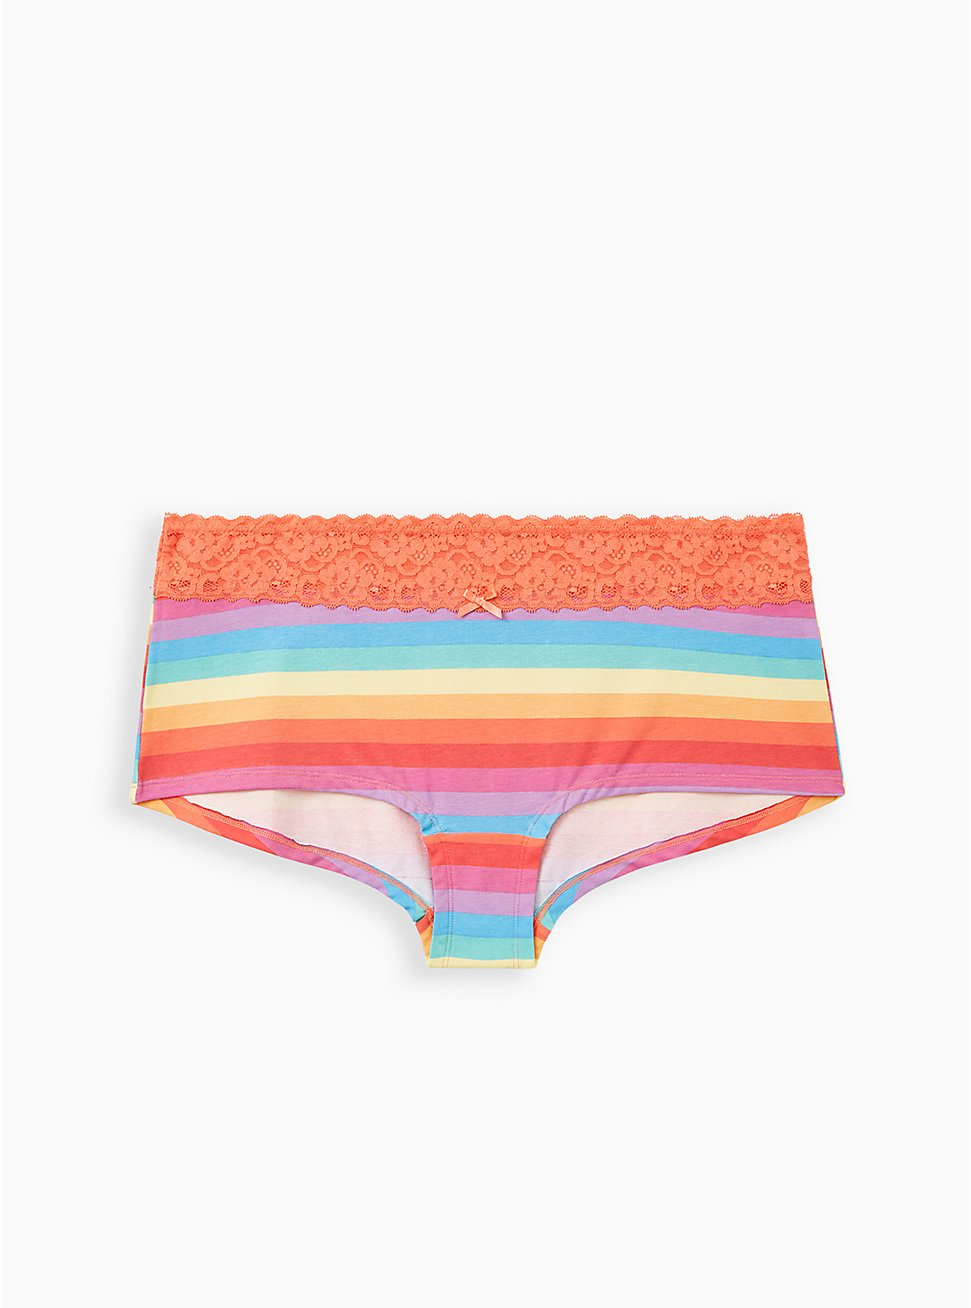 Celebrate Love Wide Lace Boyshort Panty - Cotton Rainbow Stripes, Muted Rainbow Multi- CORAL, hi-res